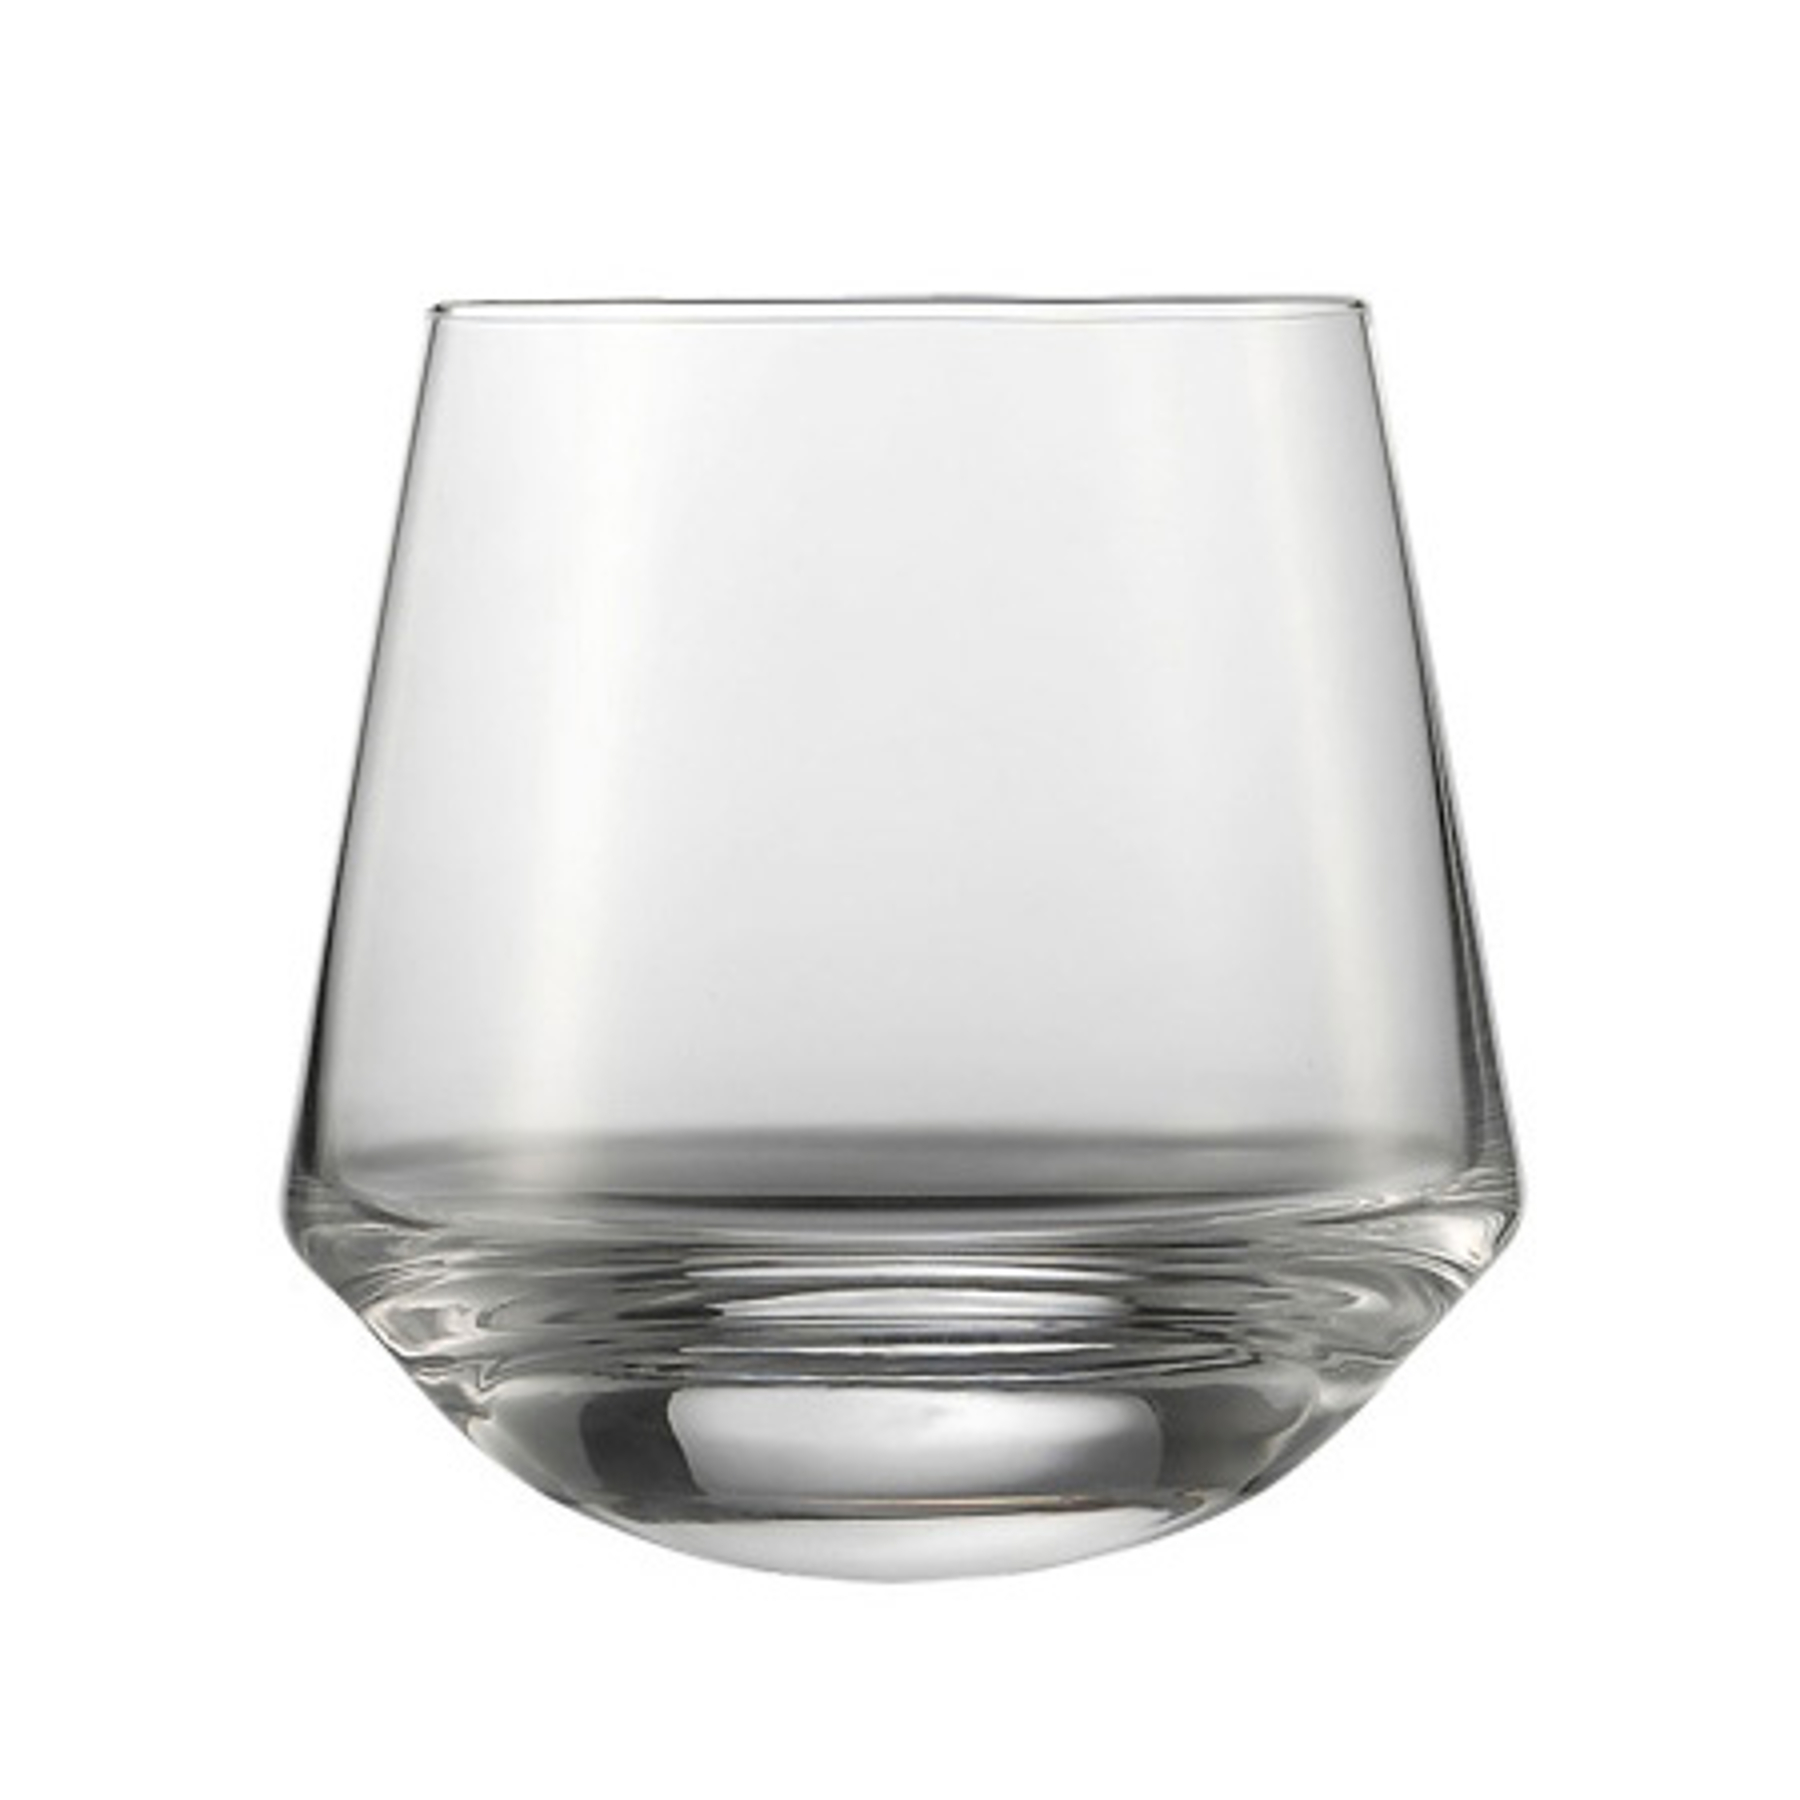 Schott Zwiesel Pure Tritan Crystal 13.4 Ounce Dancing Tumbler, Set of 2